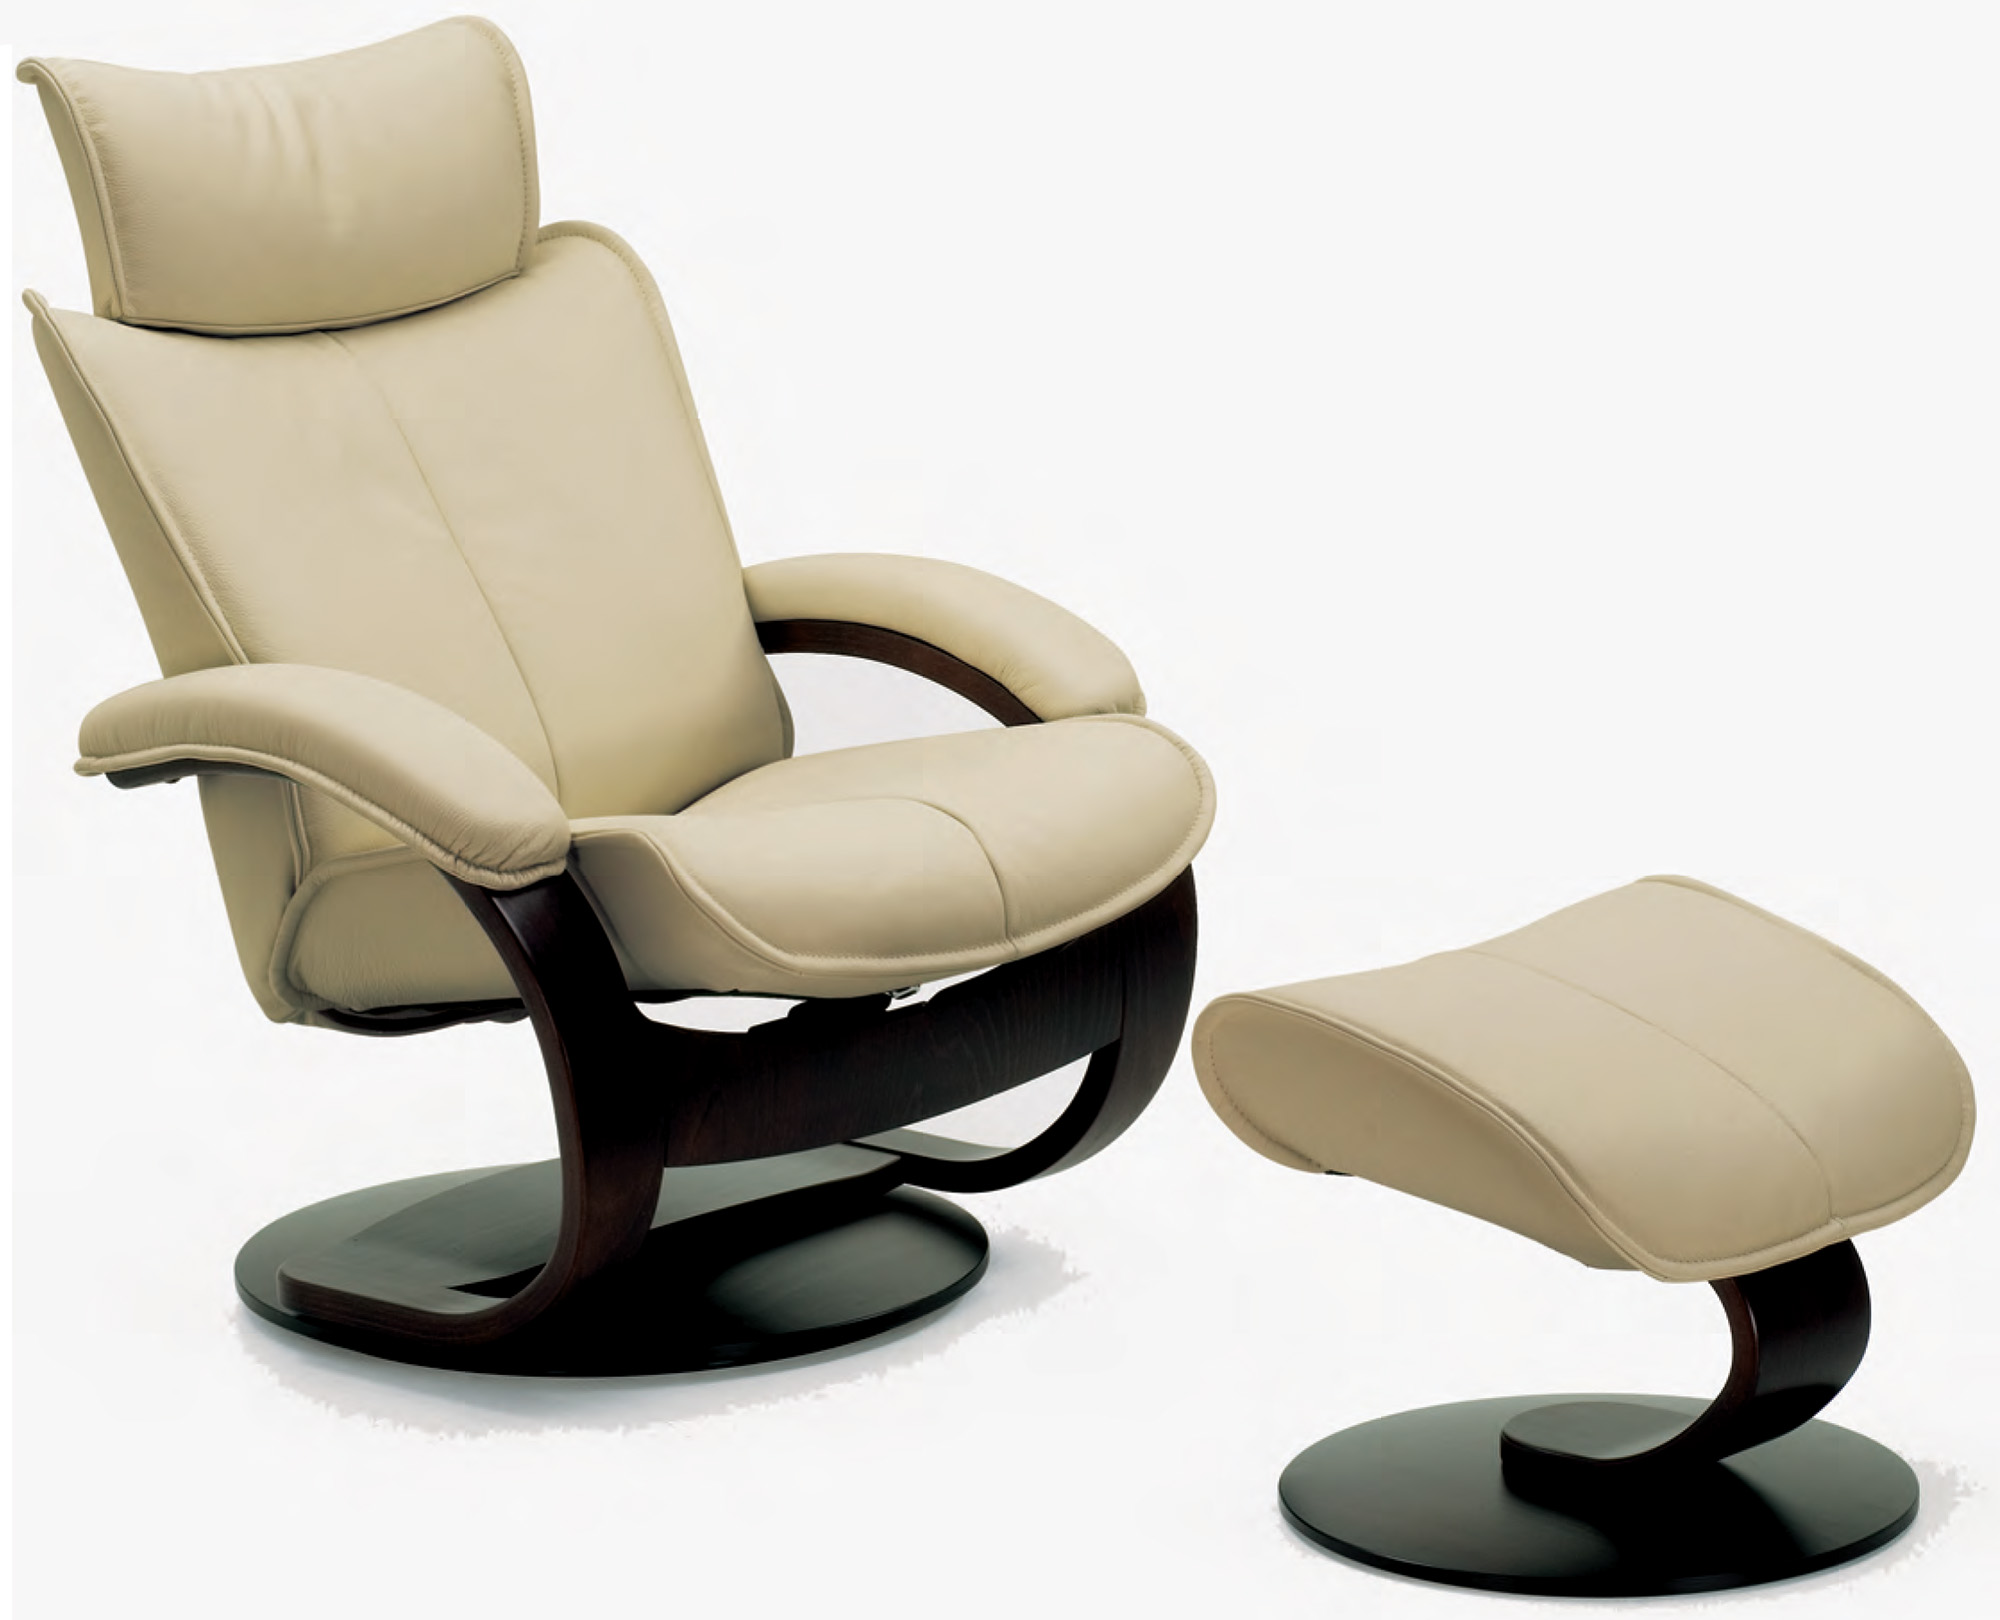 recliner chair with ottoman manufacturers american salon fjords ona ergonomic leather 43